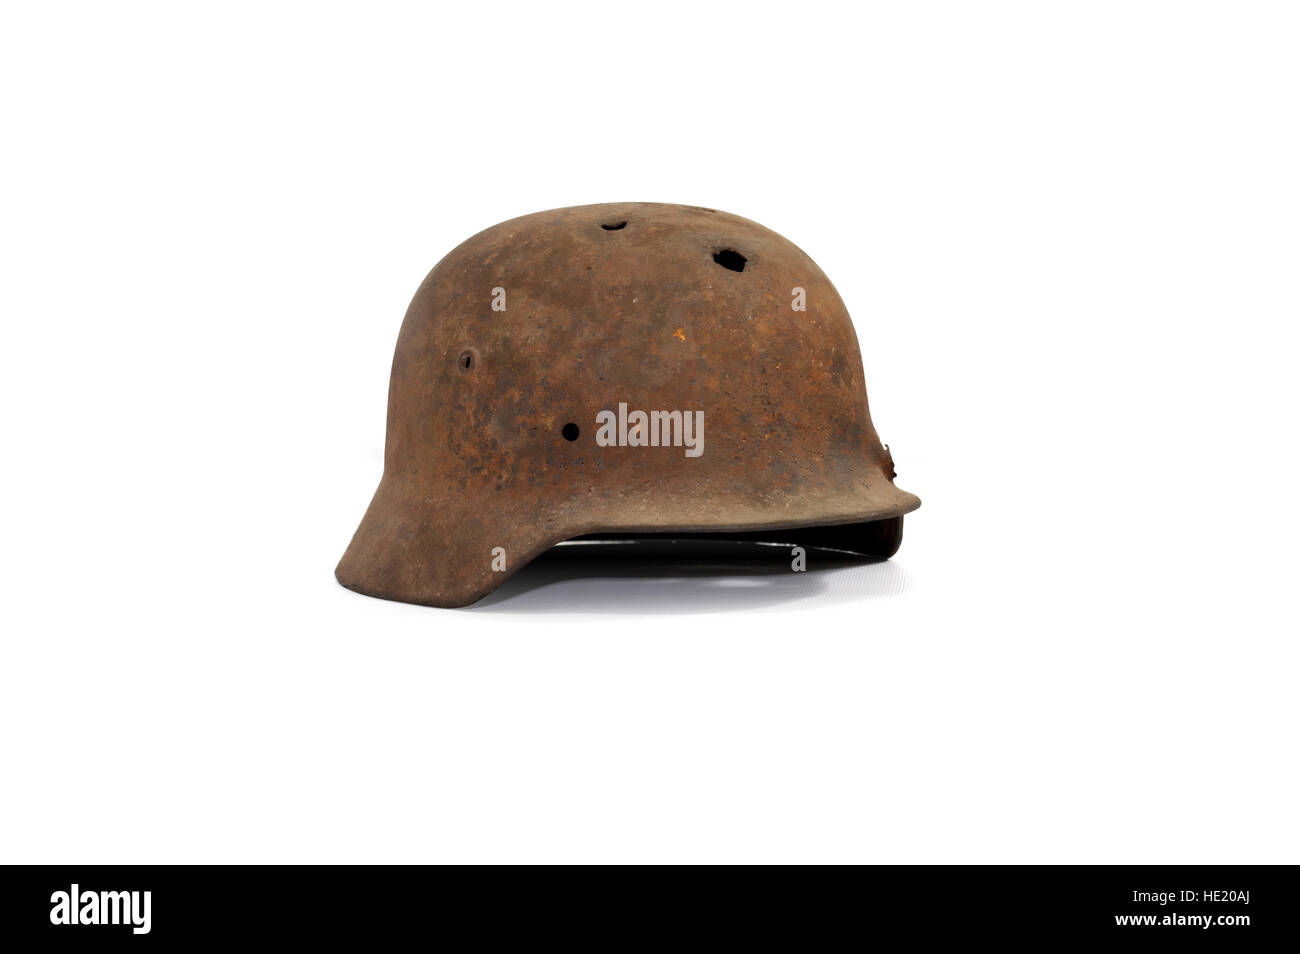 Rusty and holed German military helmet on white background Stock Photo